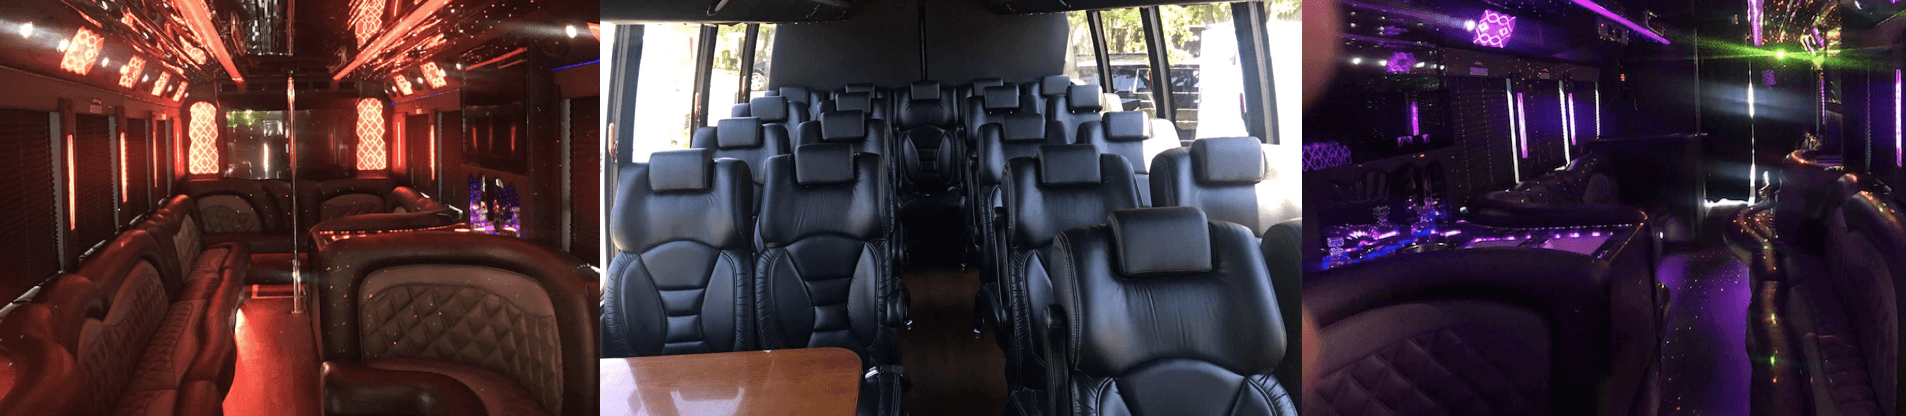 Party Bus Service in Merced Ca